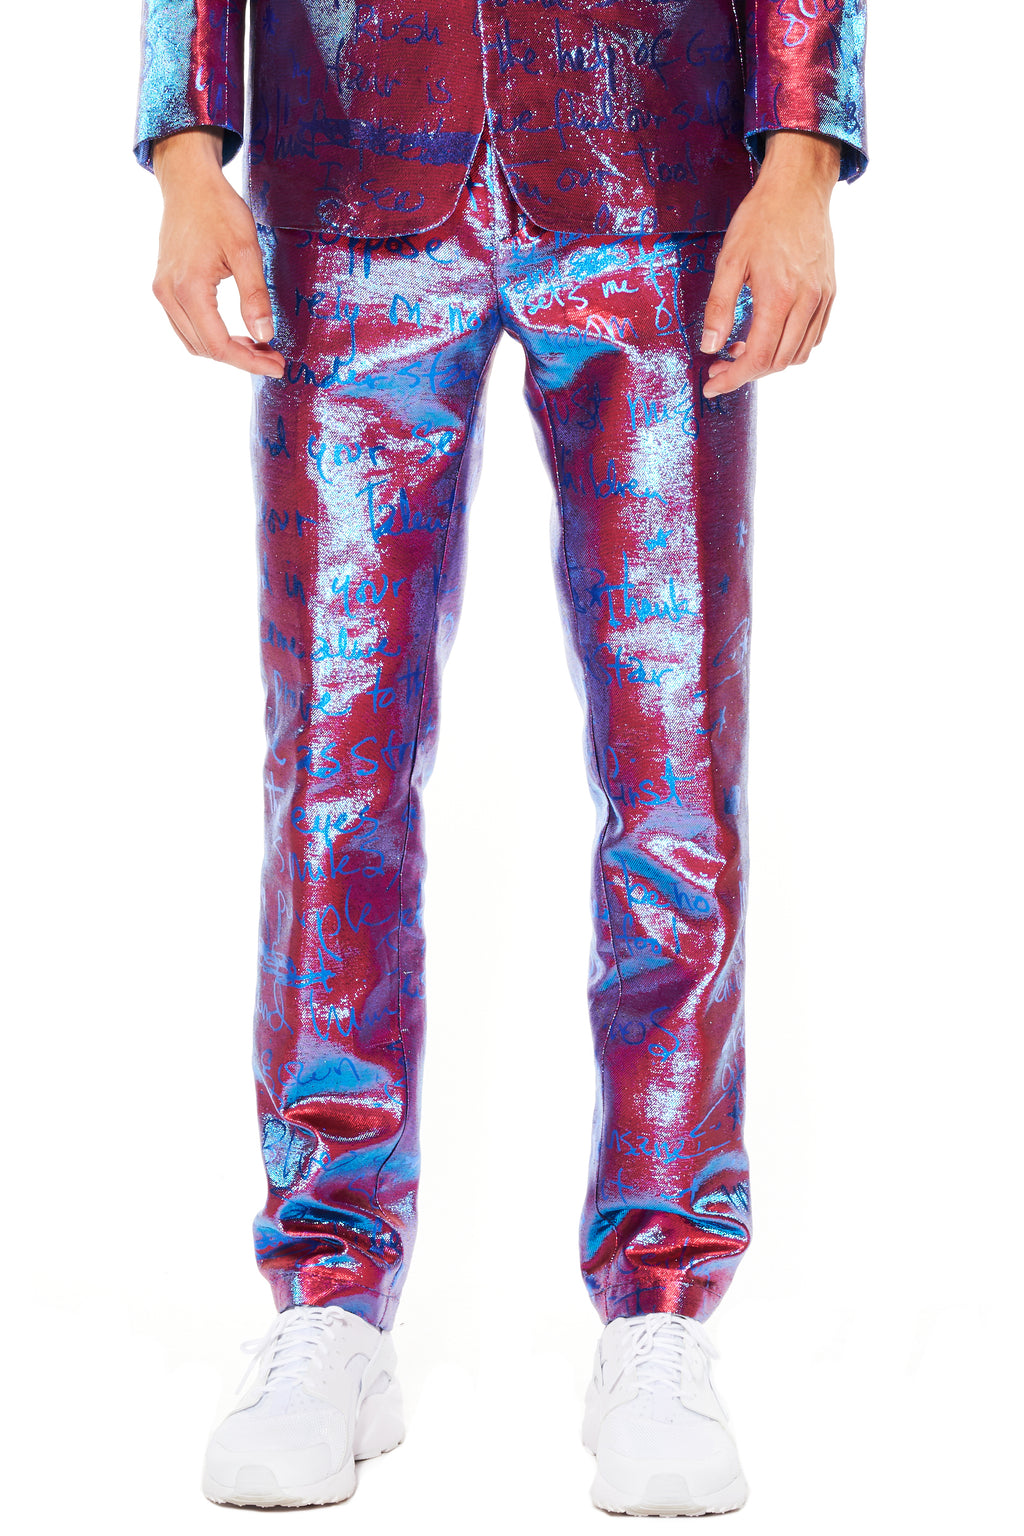 'JIMI LYRICS' TROUSERS - Web Exclusives - Libertine